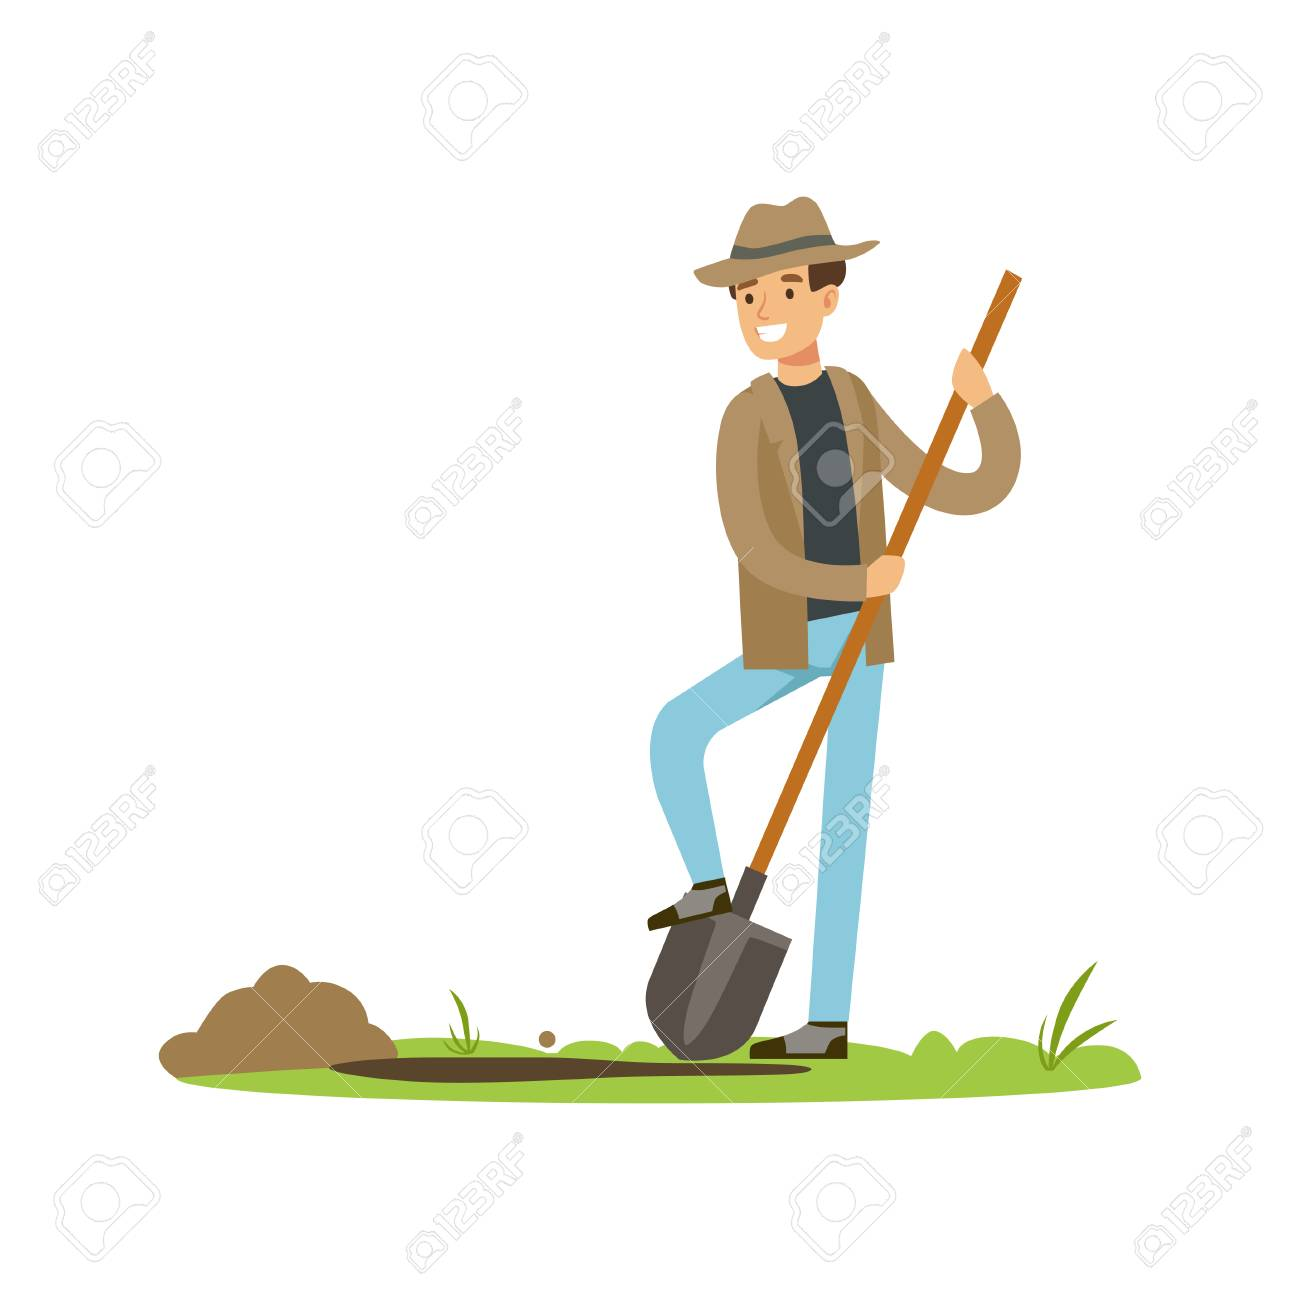 Treasure seeker with shovel in search for buried treasure - 90371788